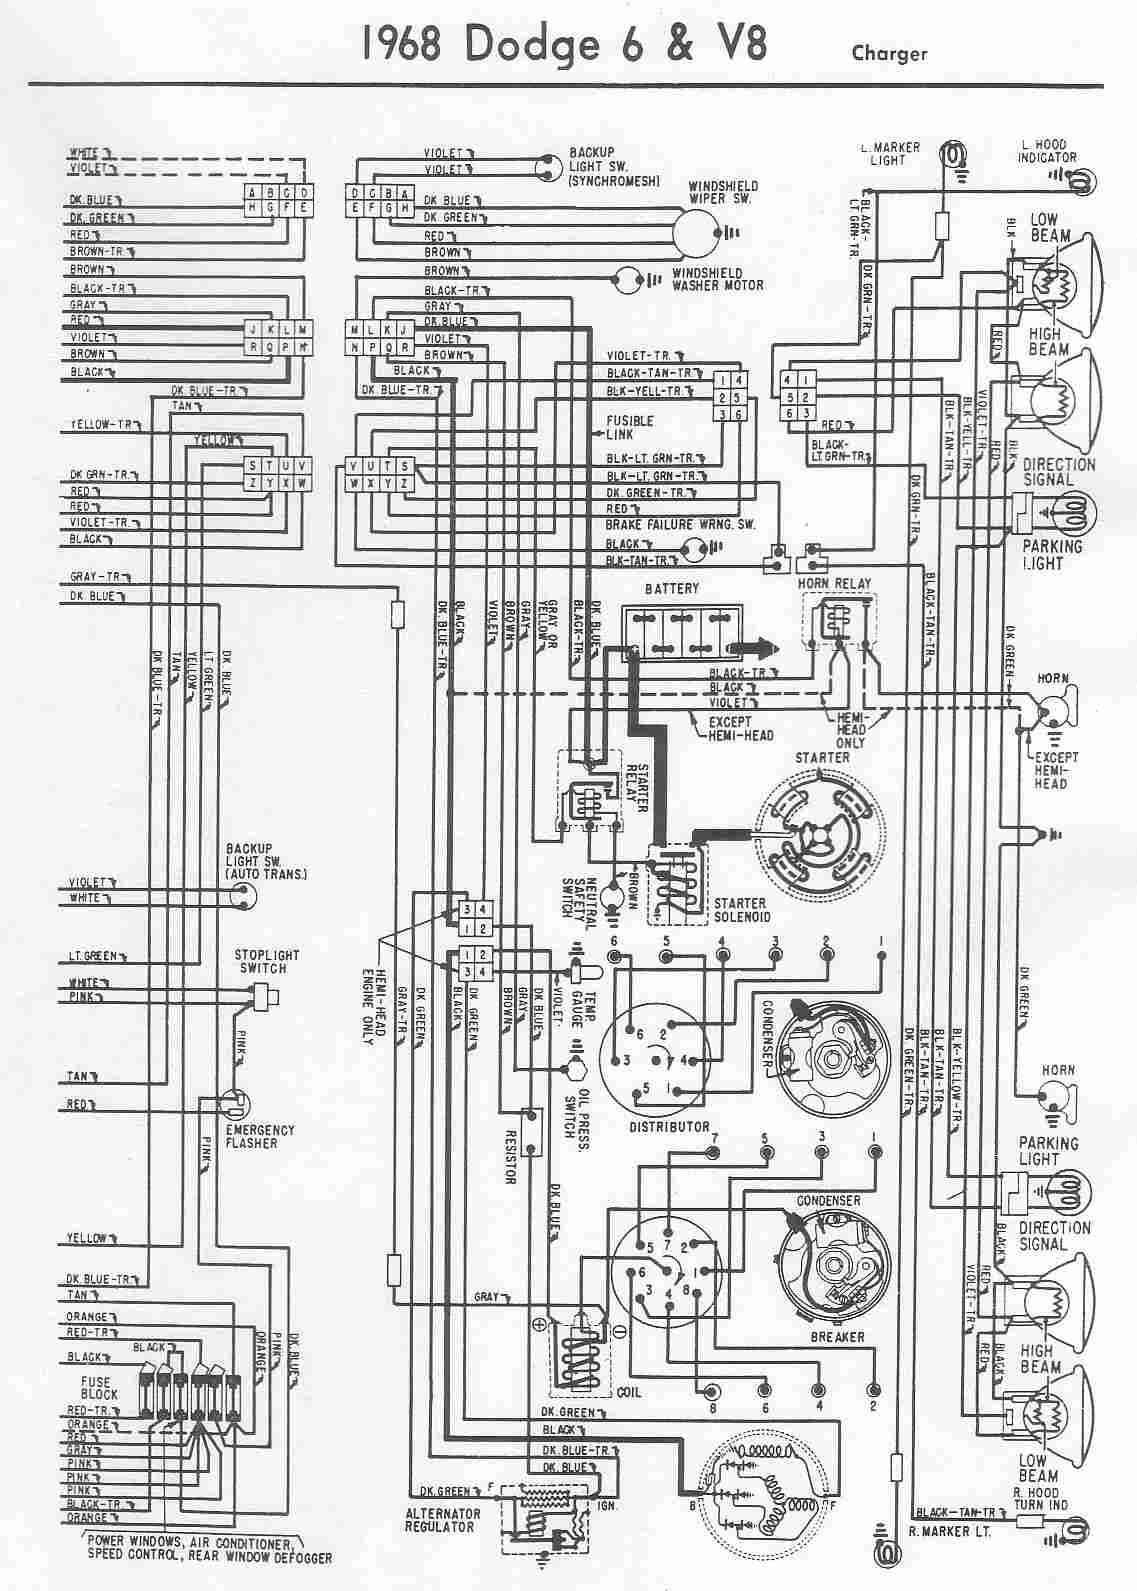 Dodge Car Pdf Manual Wiring Diagram Fault Codes Dtc